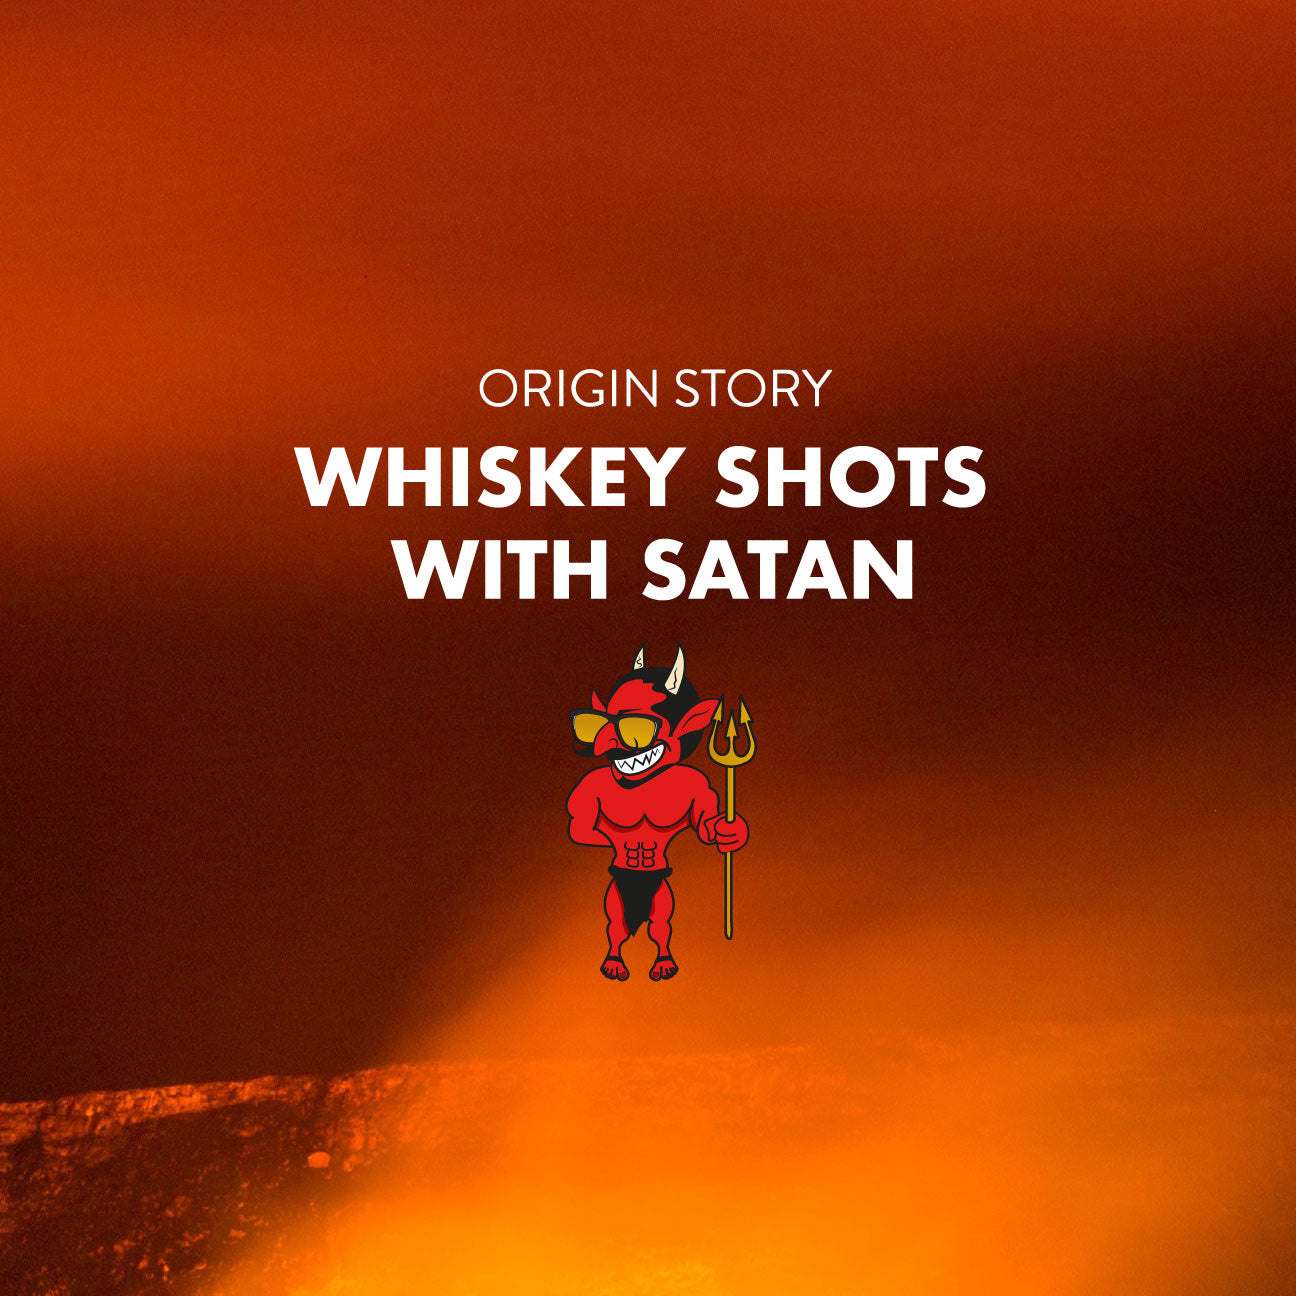 Goodr Sunglasses - Whisky Shots with Satan